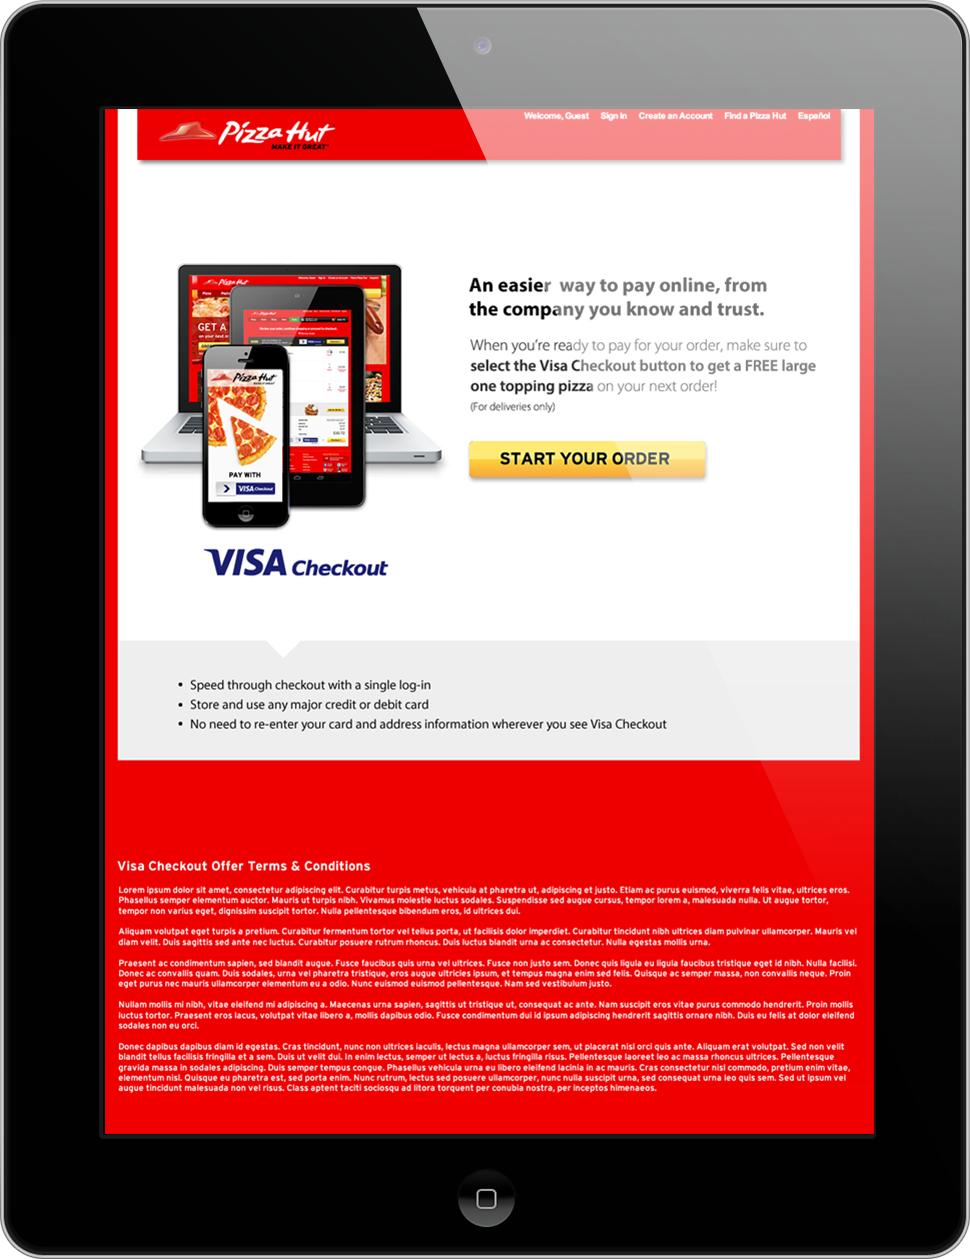 A tablet displaying an overview of Visa Checkout on the Pizza Hut website.